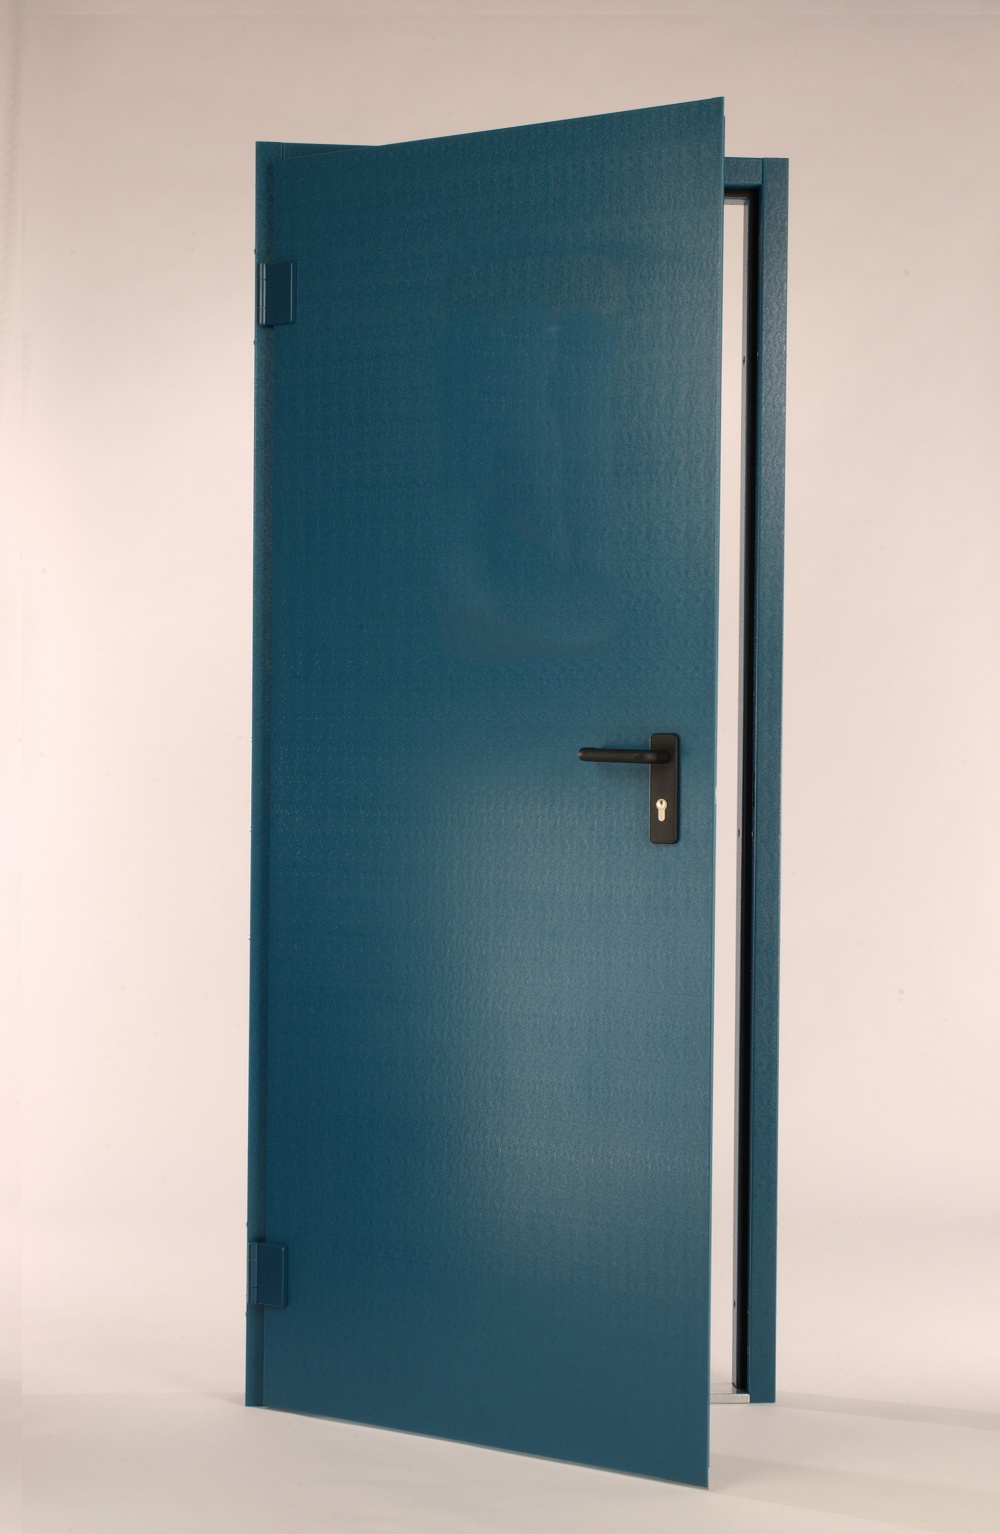 G15 steel door in Ocean Blue plastisol with adjustable hinges, mortice lock and lever handles. Other options are available